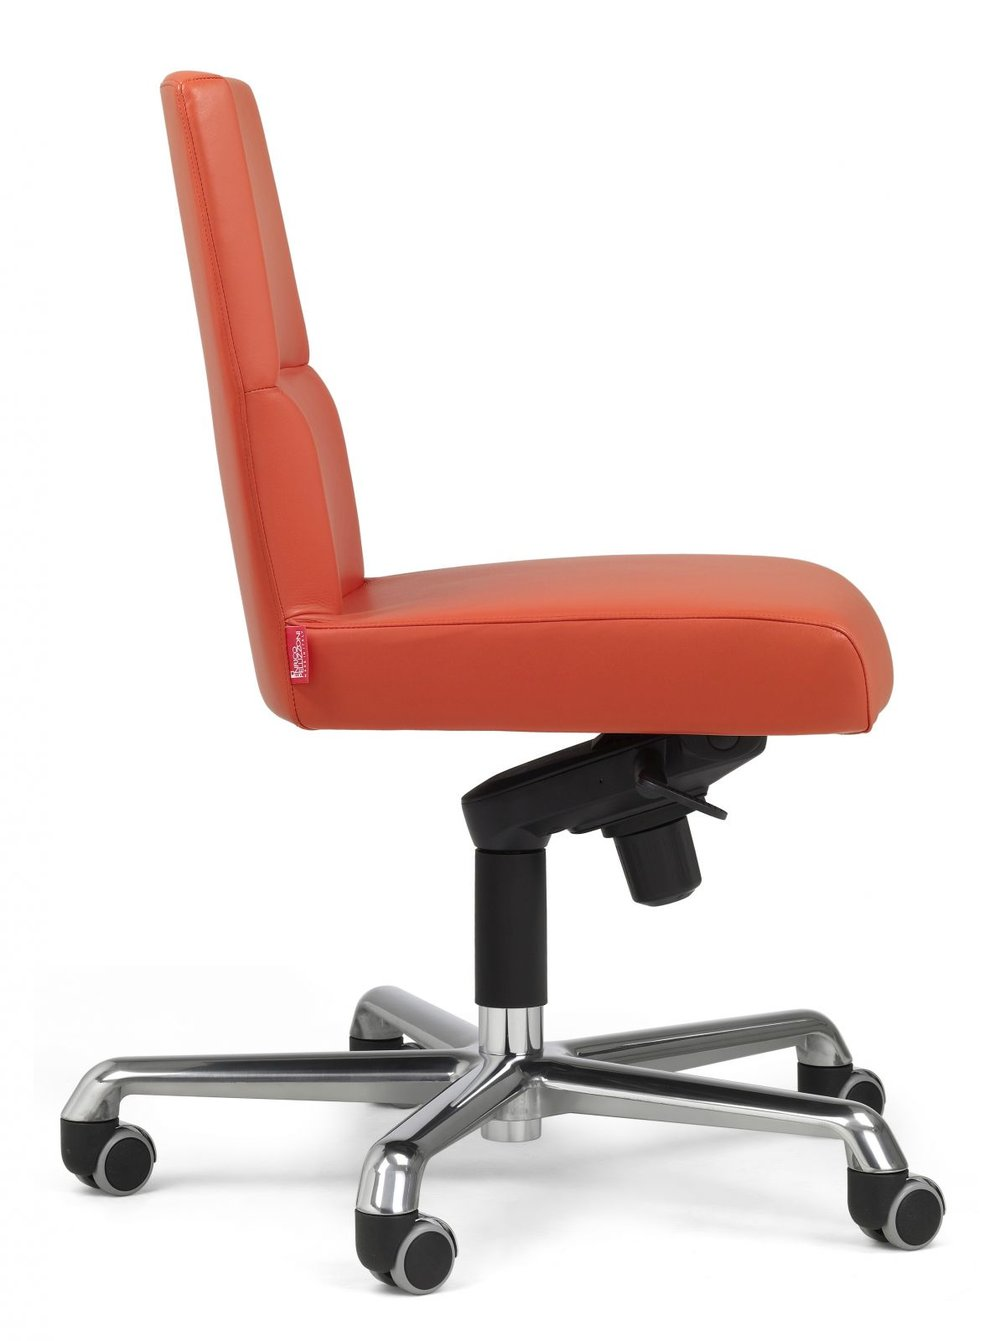 modern-office-chairs-Italian-furniture-designer-chairs (25).jpg